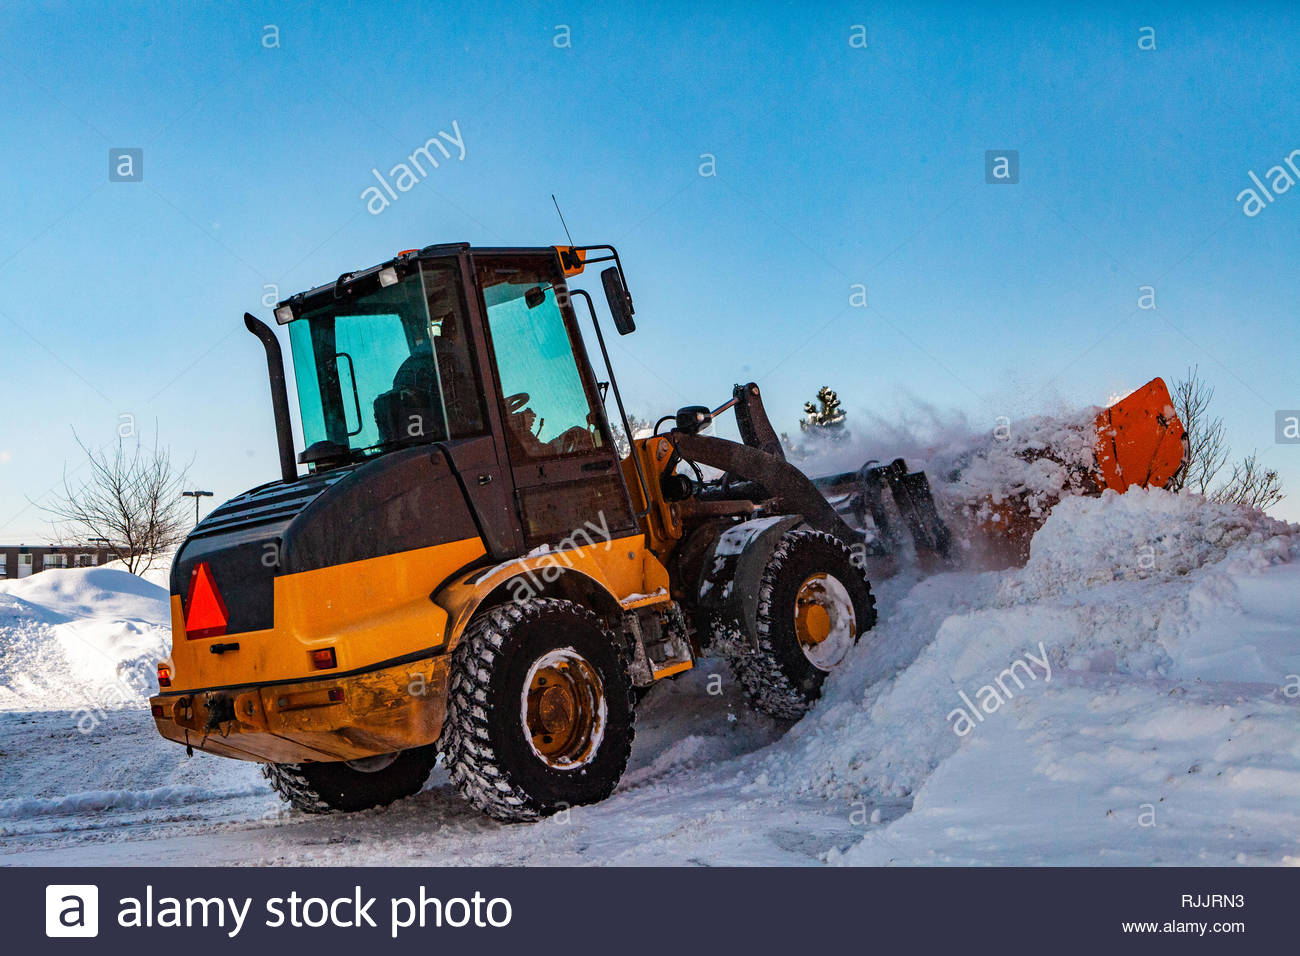 Snowplow tractor clearing snow. Yellow tractor making a pile of snow while clearing the streets after a winter storm - Stock Image